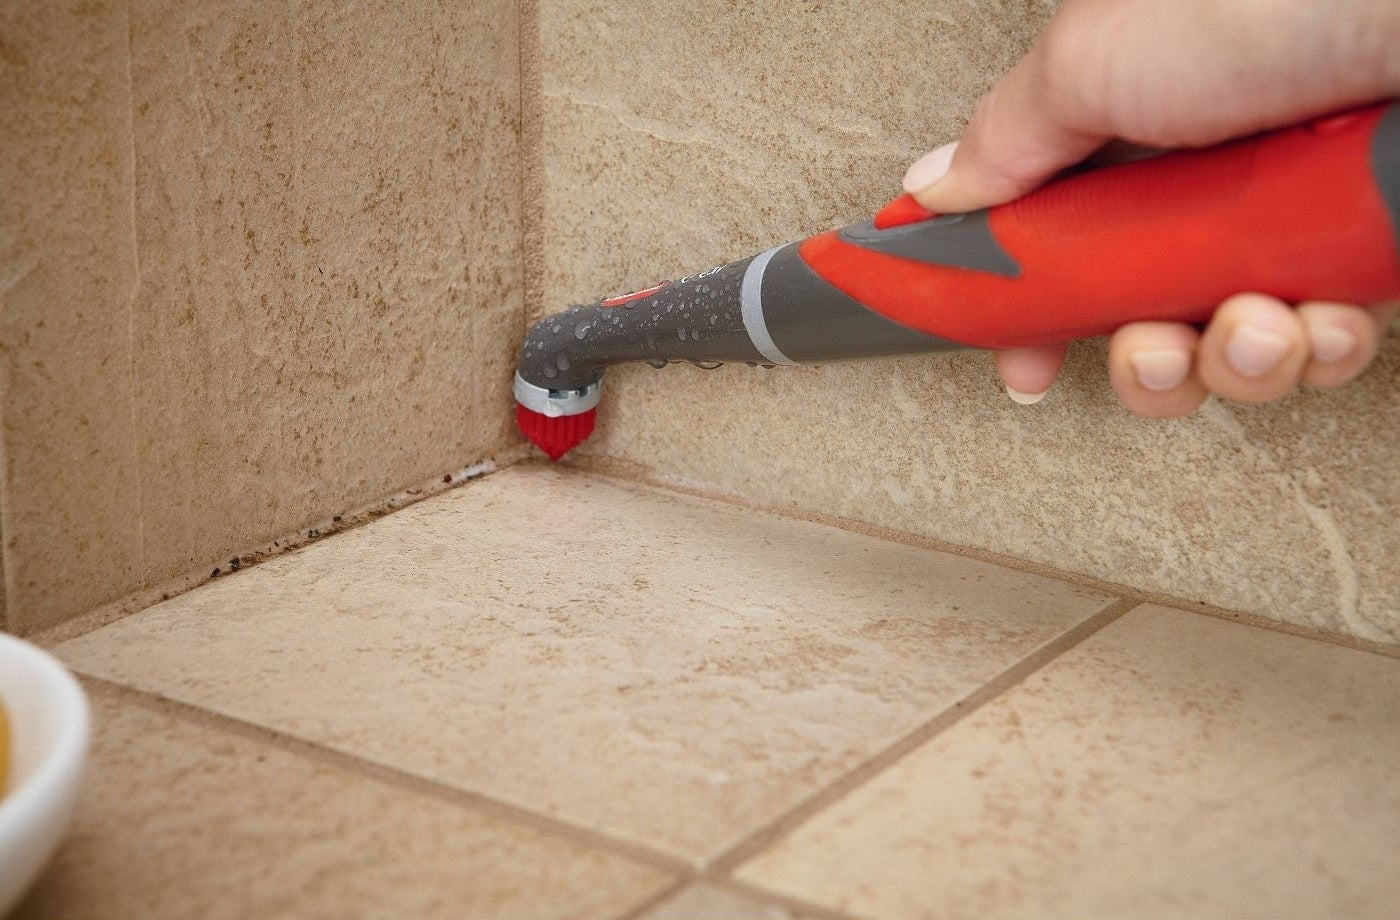 person using red rubbermaid power scrubber to clean up a shower corner